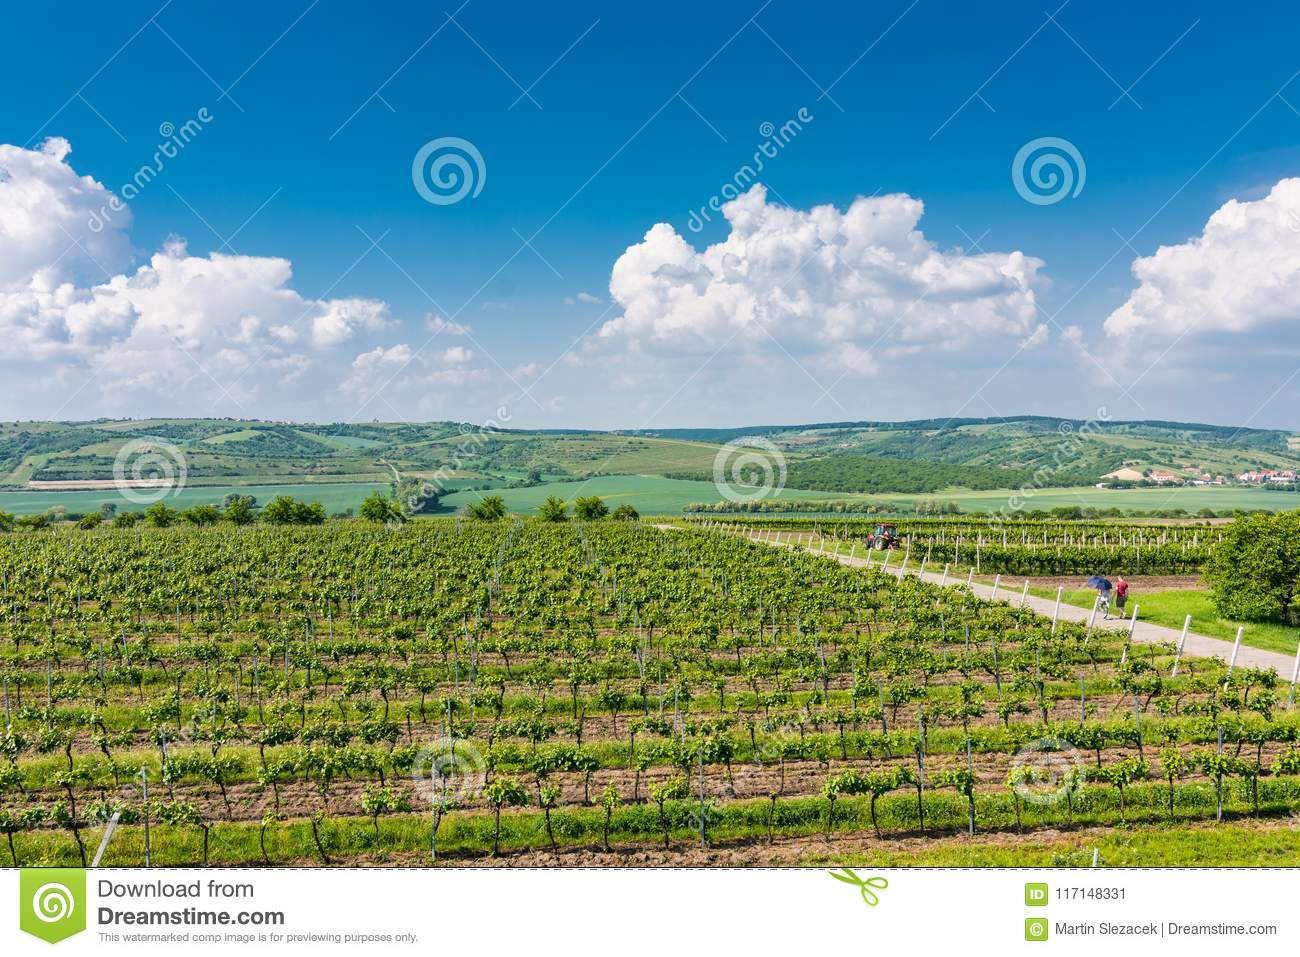 South Moravia, Czech republic: Vineyard fields on agriculture land. Countryside meadow, vineyard plant and beautiful landscape nea